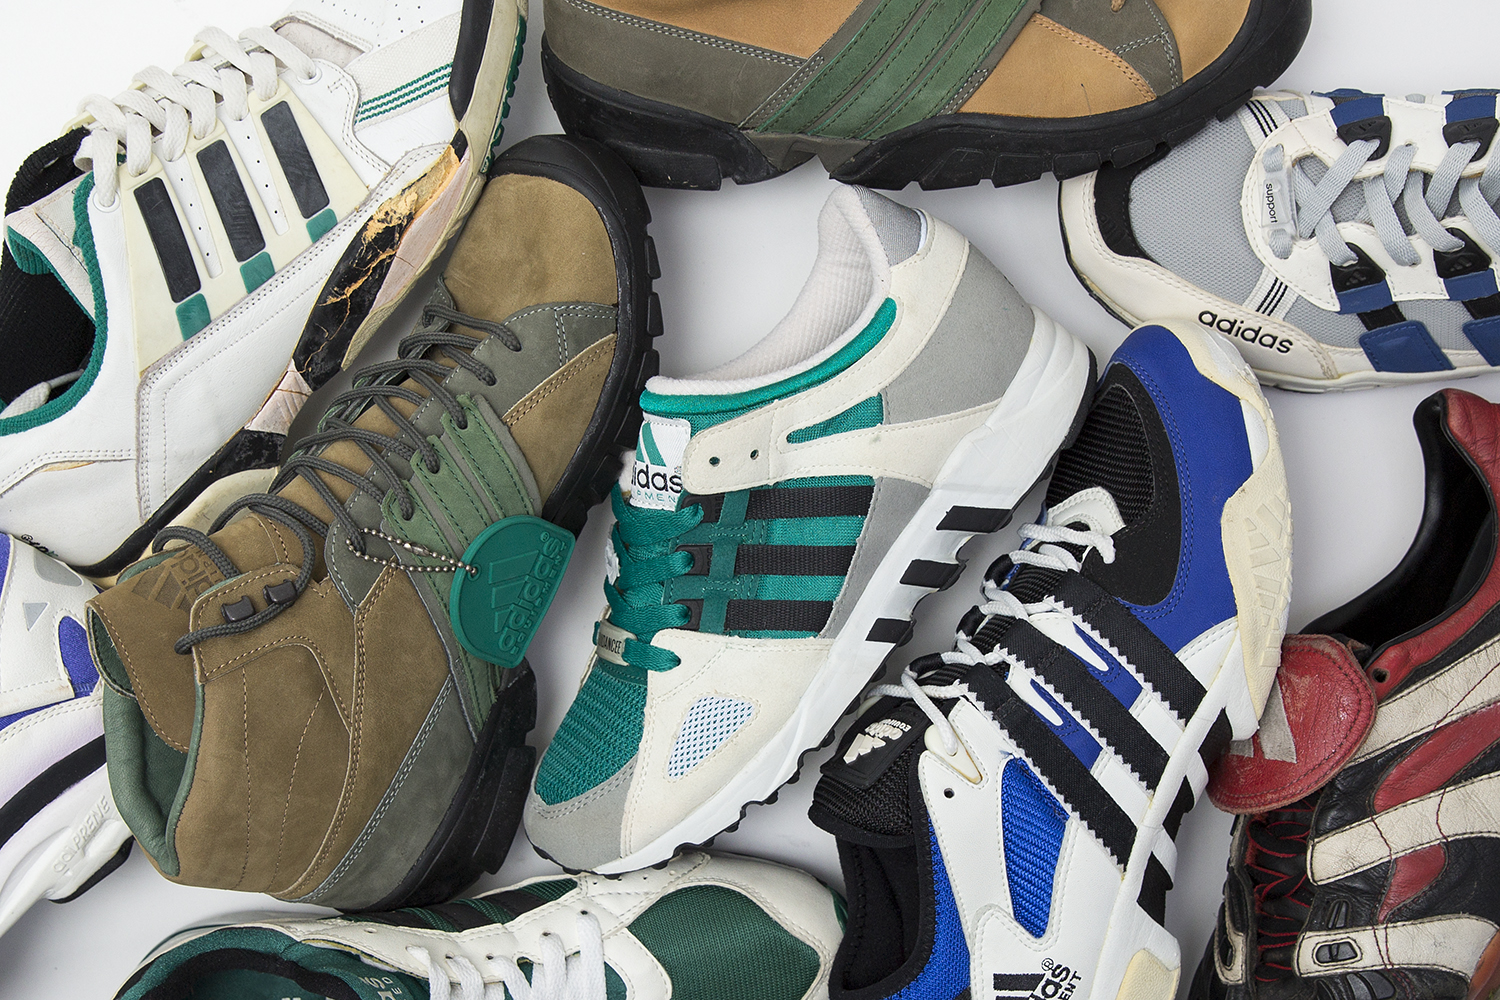 adidas_EQT_Equipment_lock_up_size_hq_exclusive-19_small